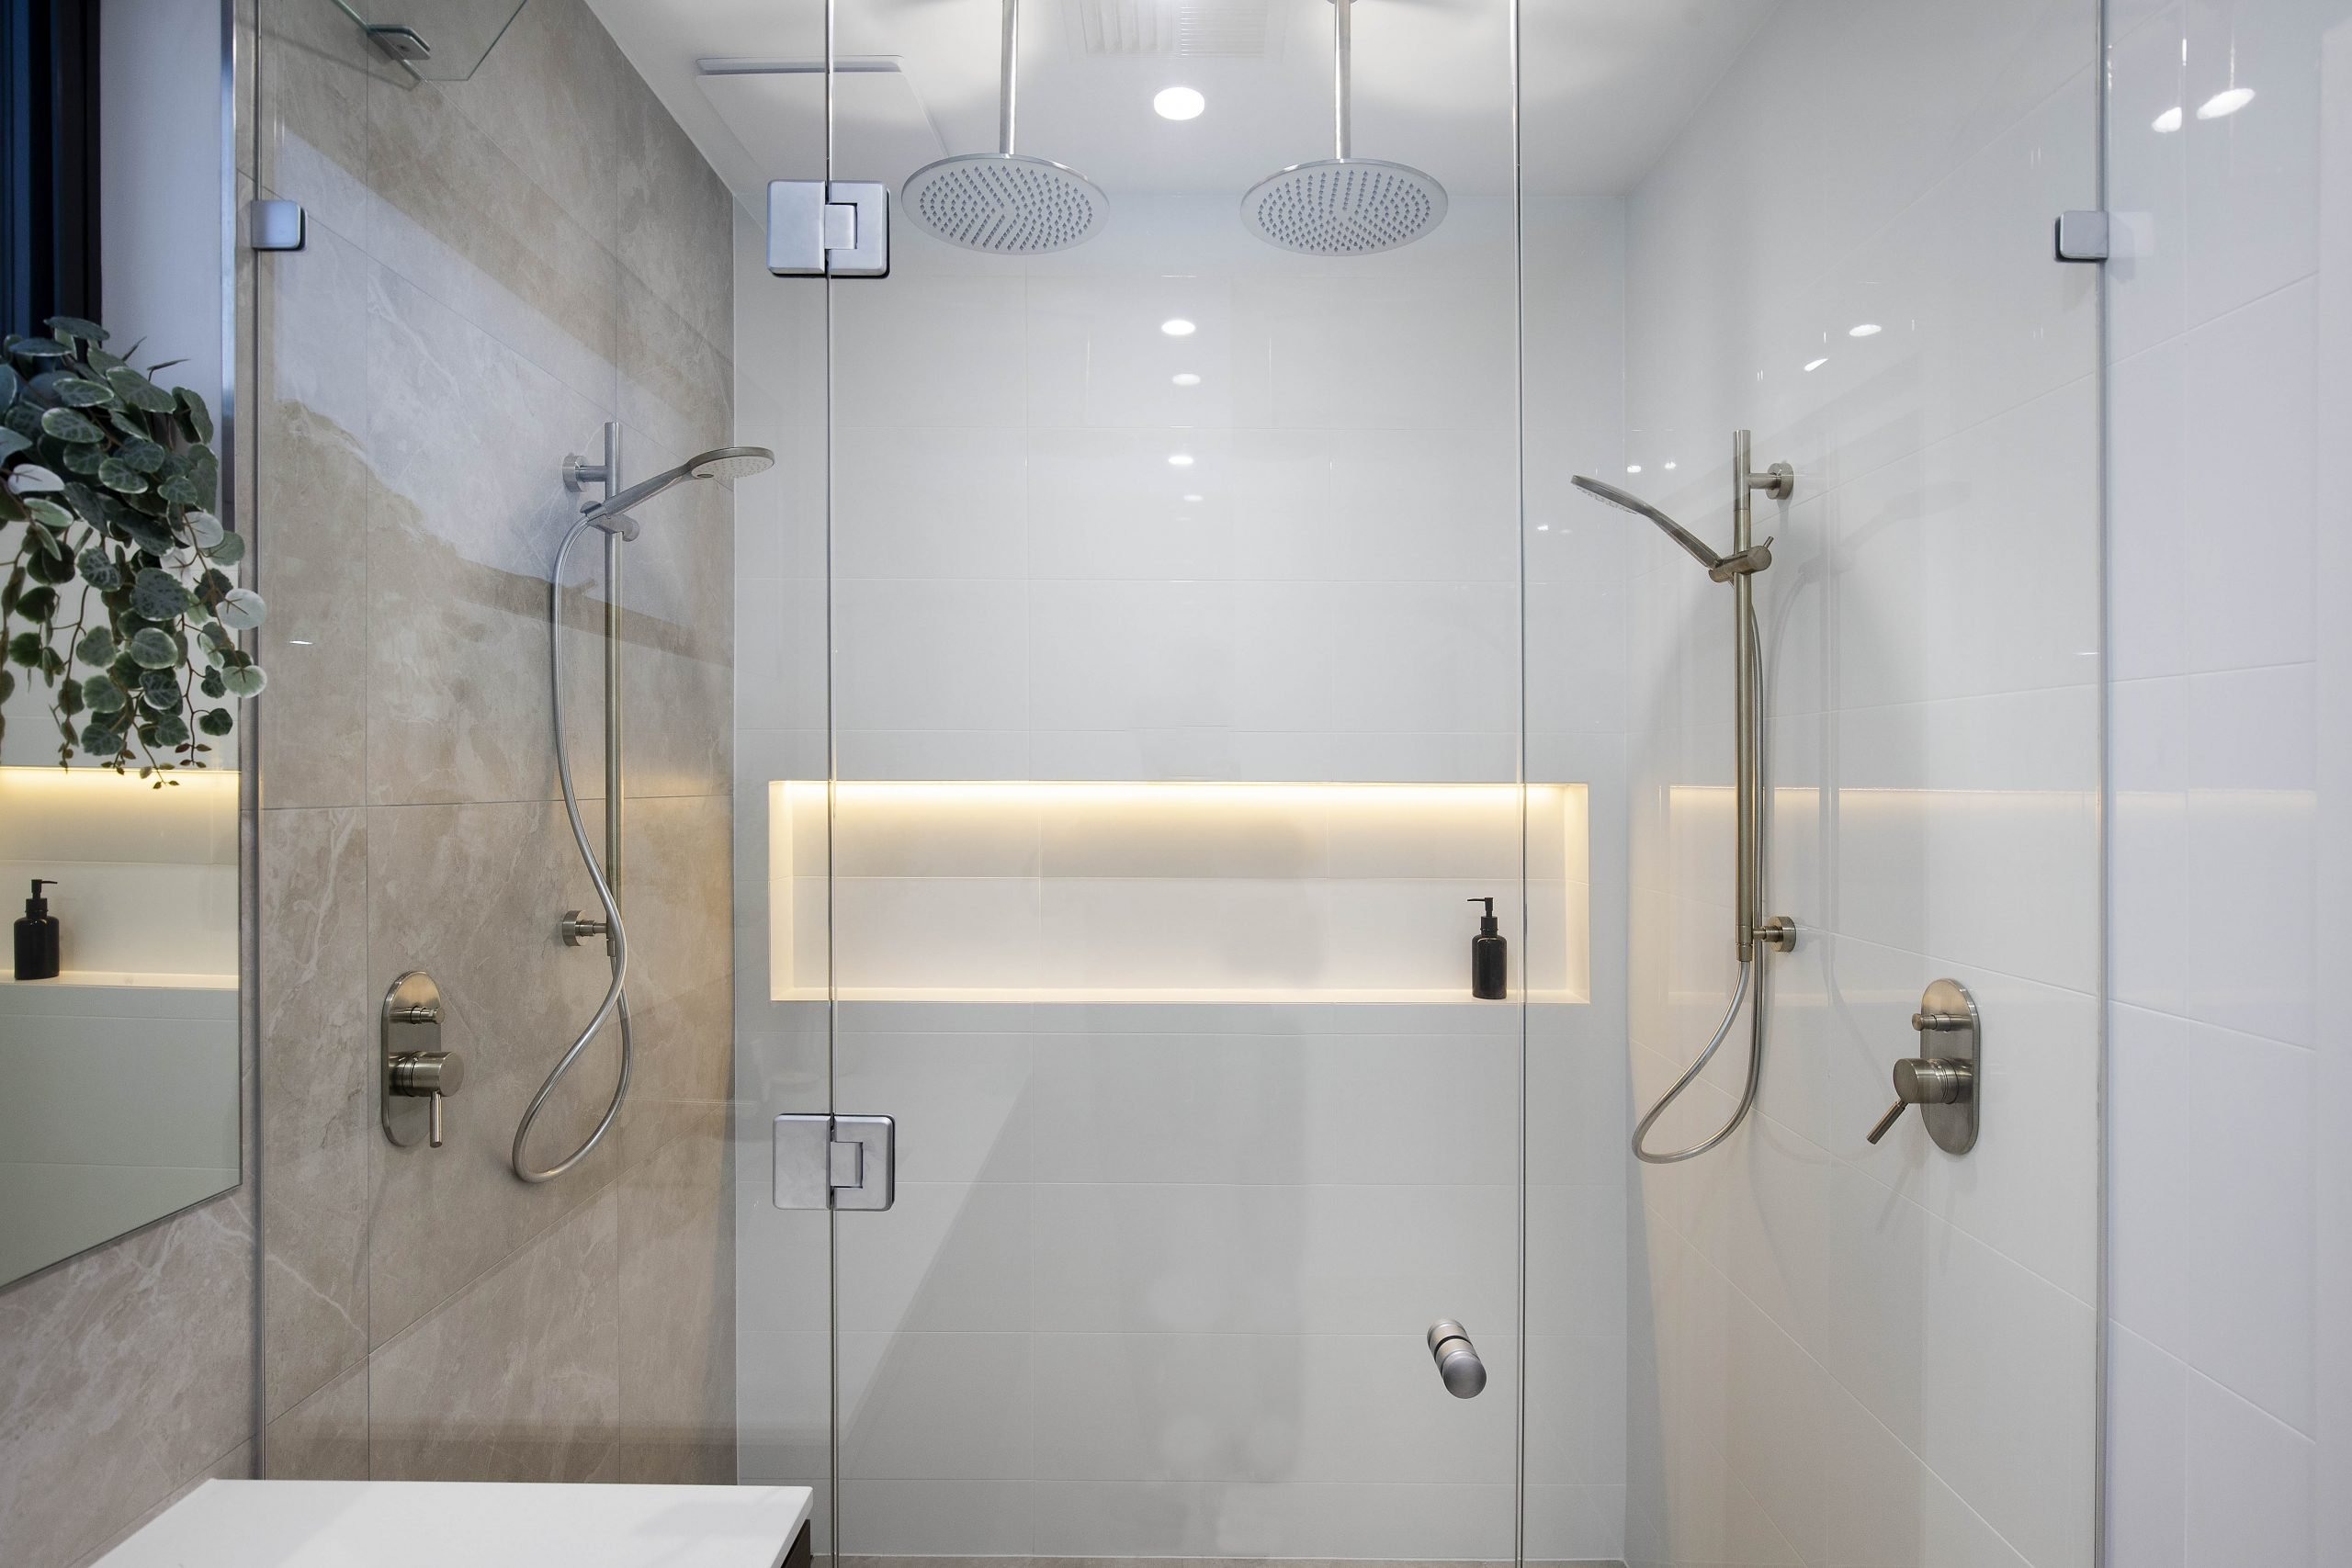 Galaway Ave Shower Heating and Cooling System